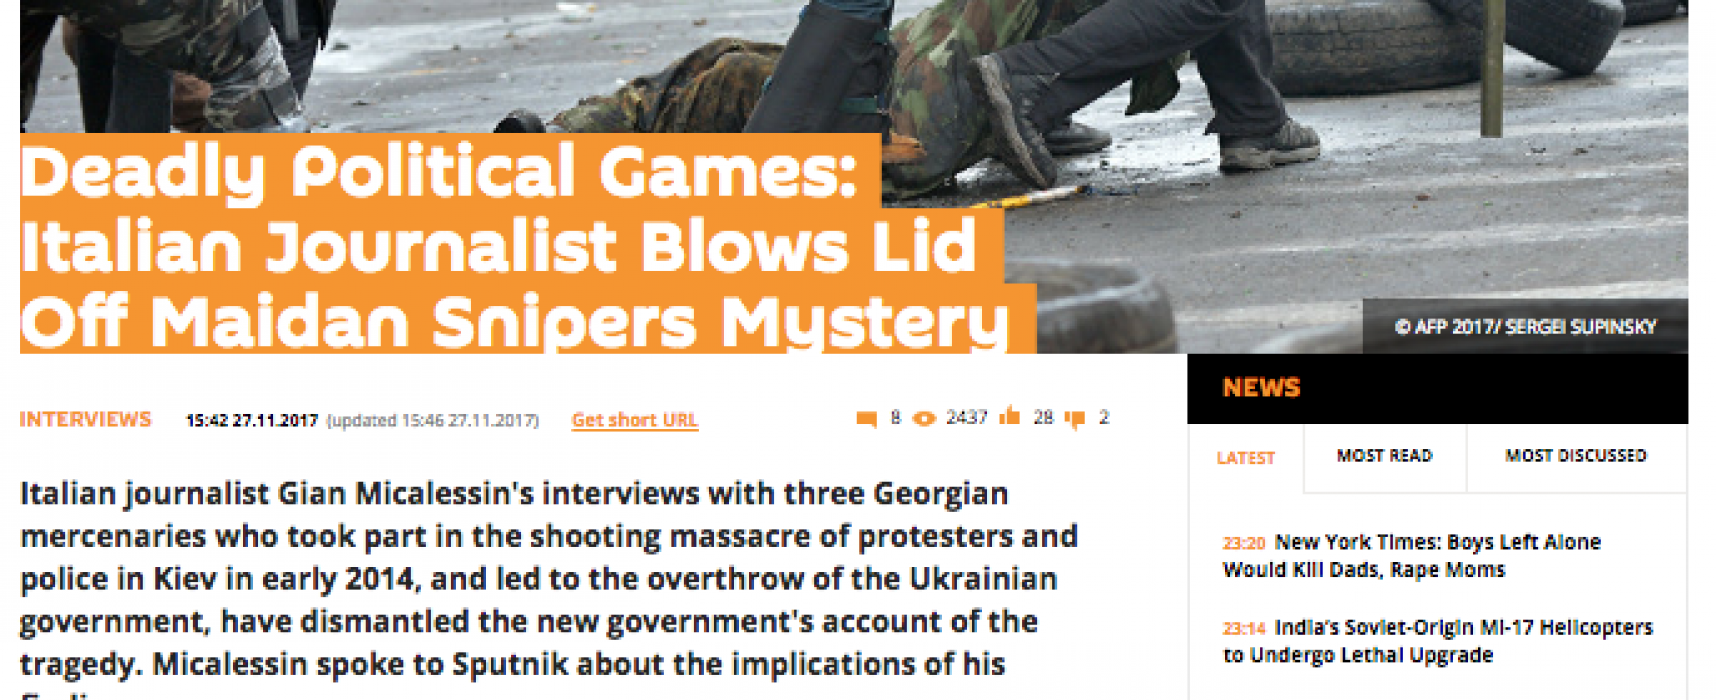 Fake: Georgian Snipers Shot Maidan Demonstrators